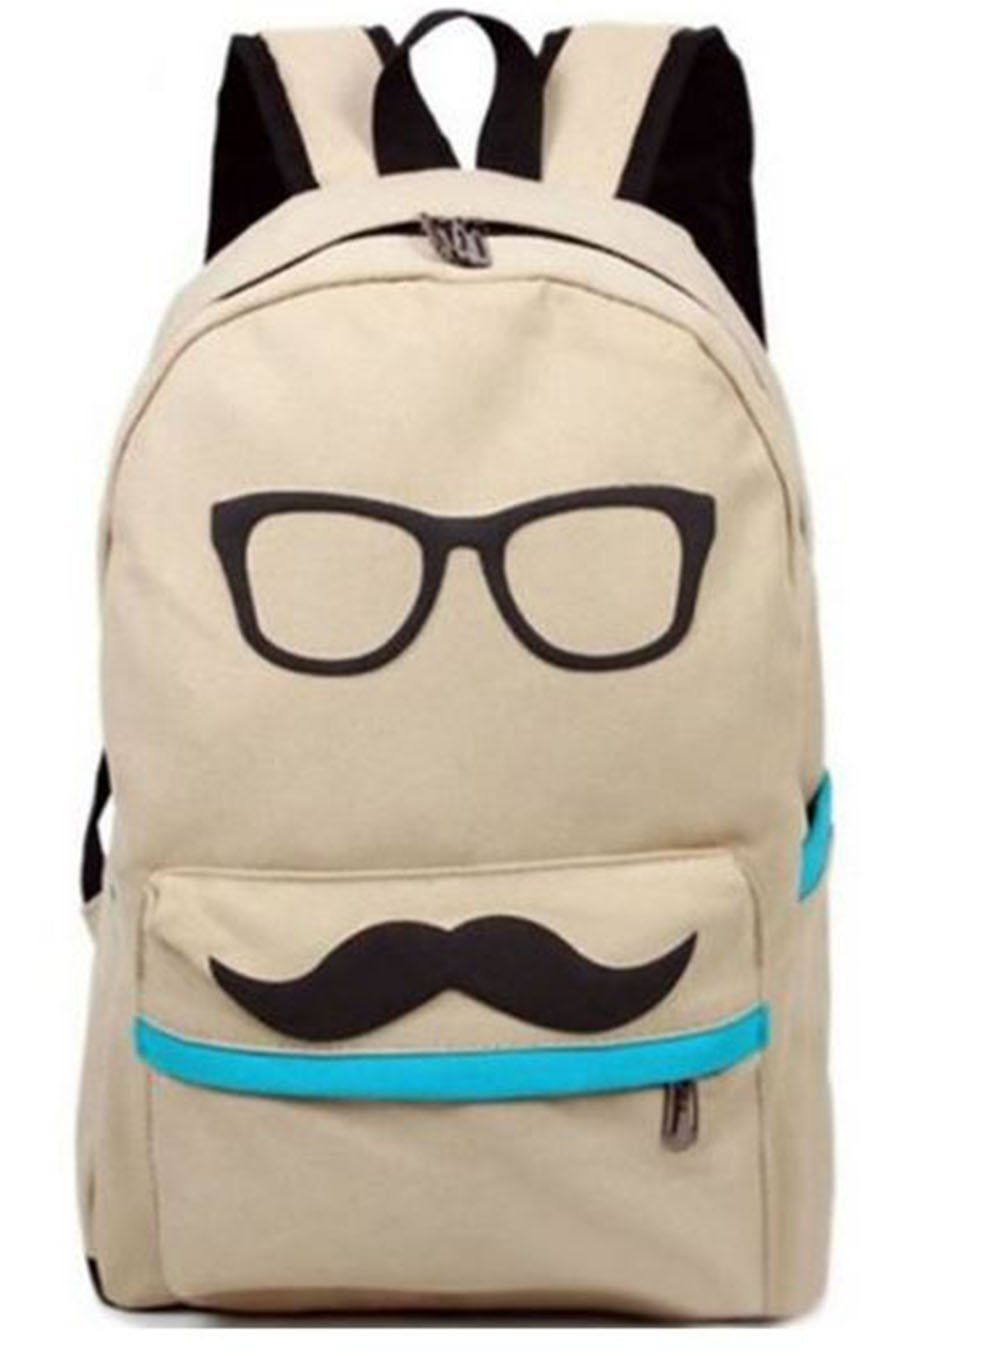 Cool Backpacks For Middle School Girls Google Search Cool In